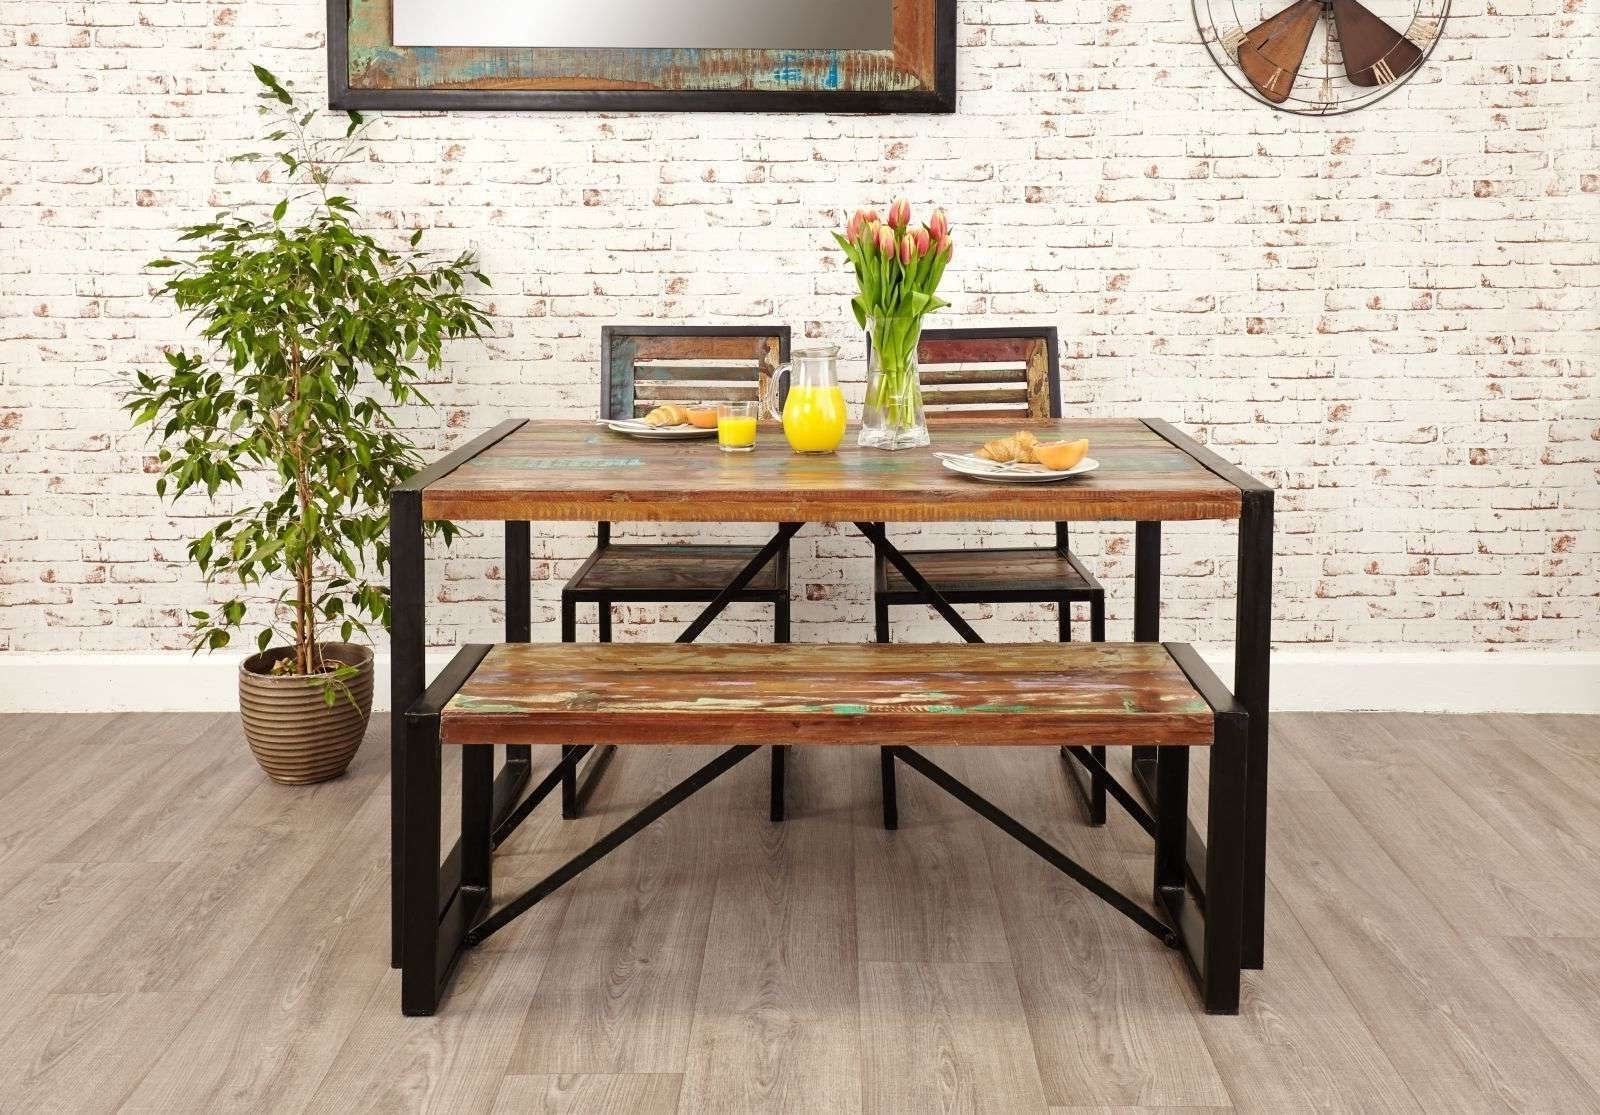 Agra Reclaimed Wood Furniture Dining Table, Two Chairs And Bench Set Pertaining To Well Known Small Dining Tables And Bench Sets (View 22 of 25)